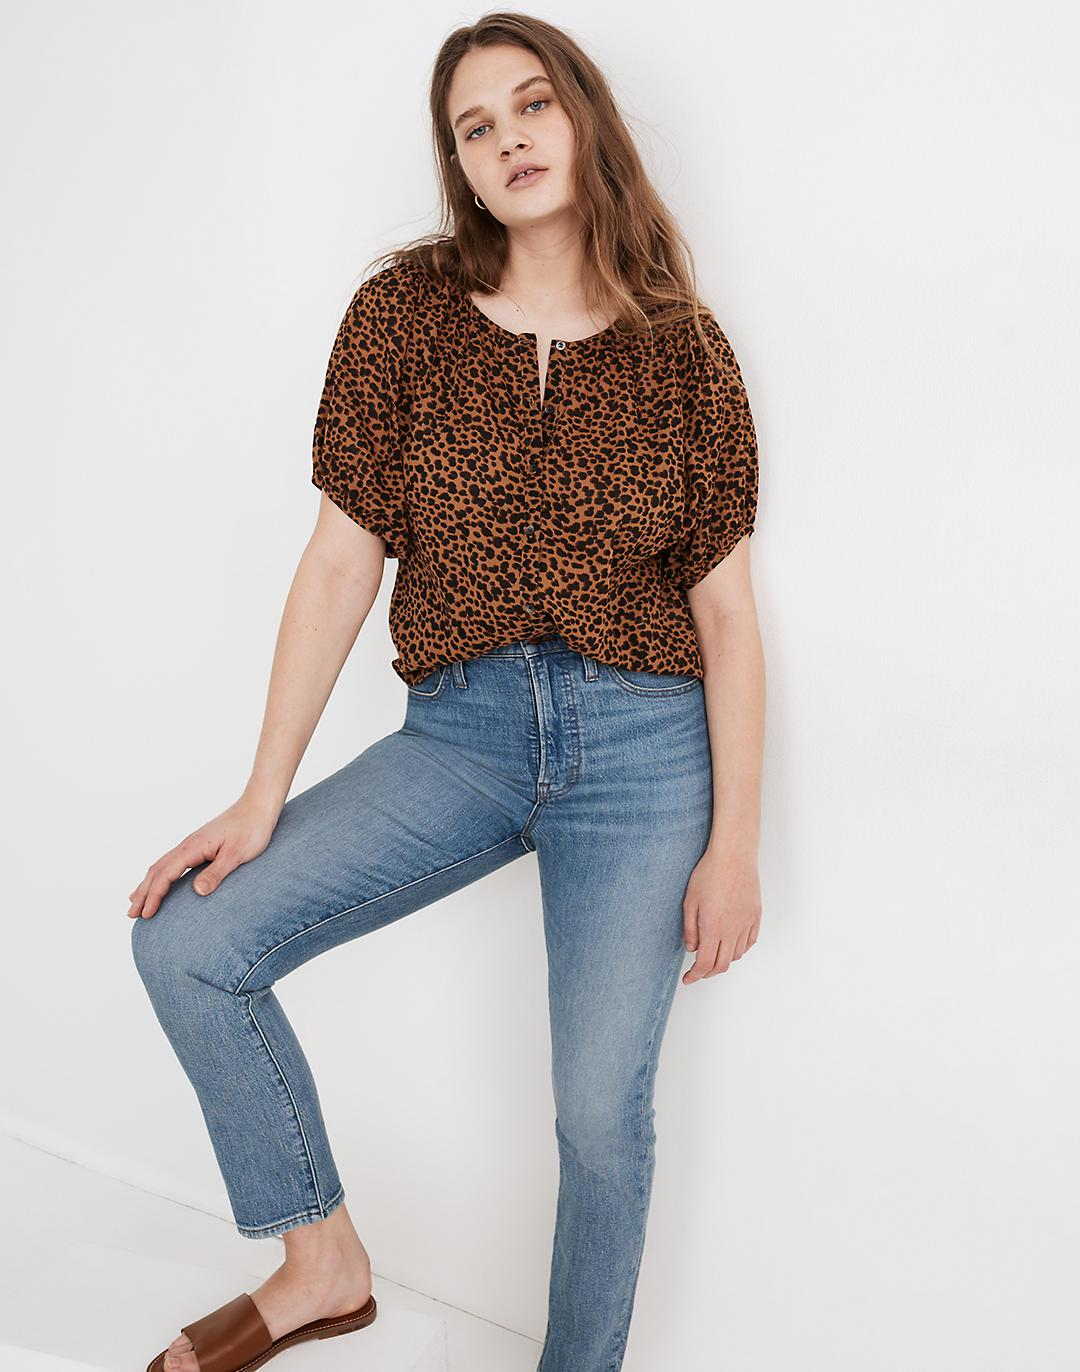 Balloon-Sleeve Button-Up Top in Painted Leopard